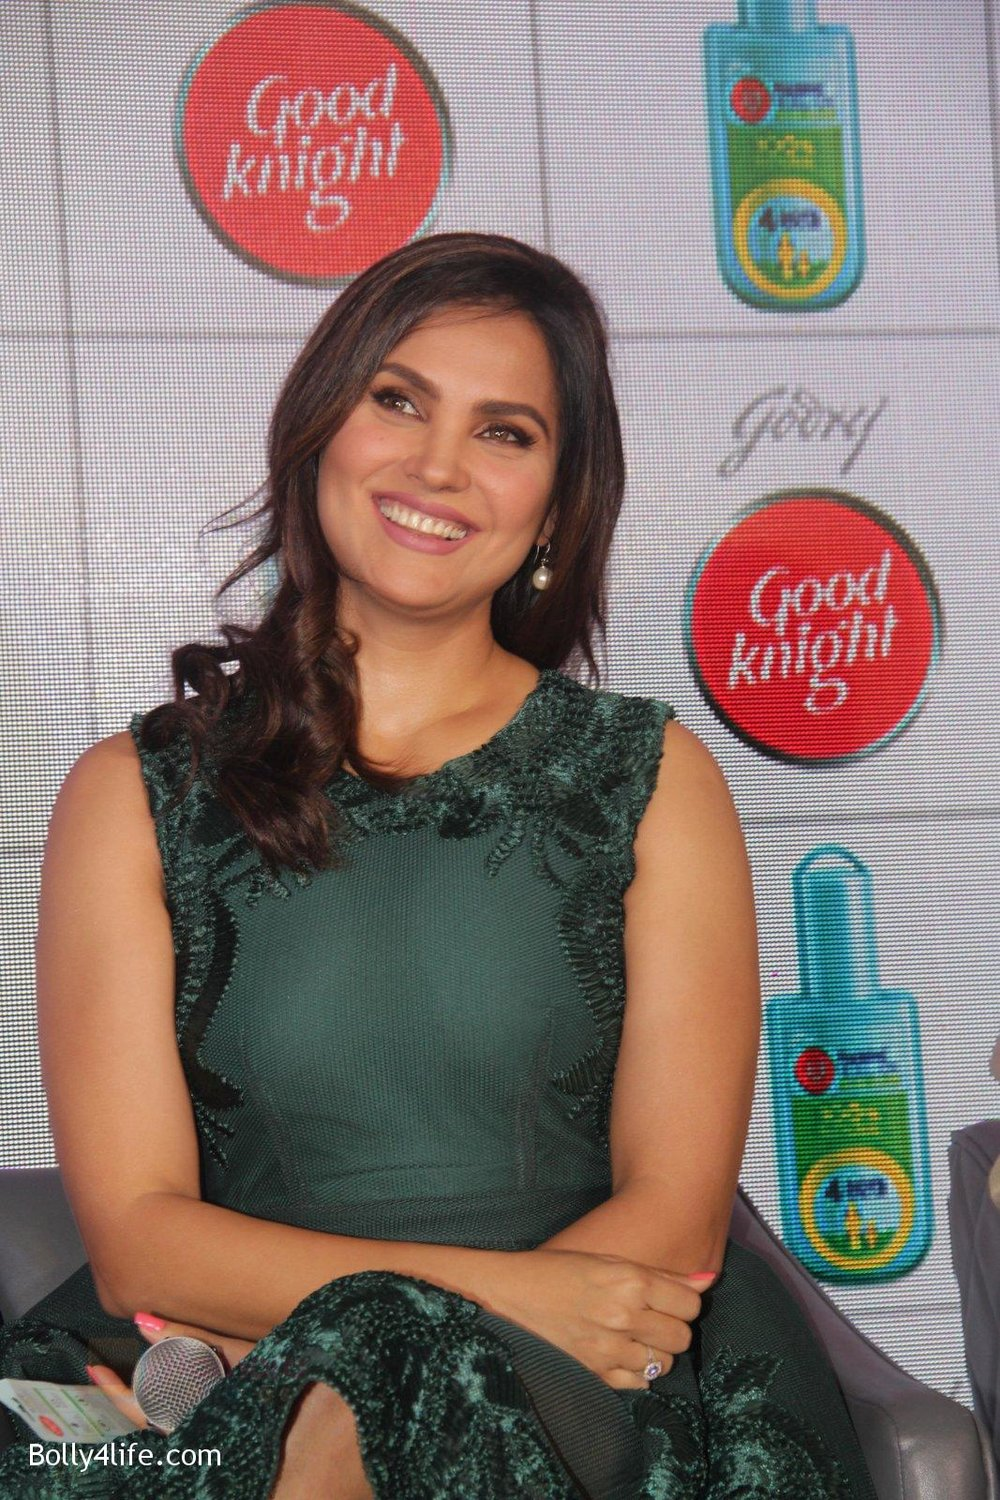 Lara-Dutta-promotes-Good-Night-on-29th-Sept-2016-6.jpg